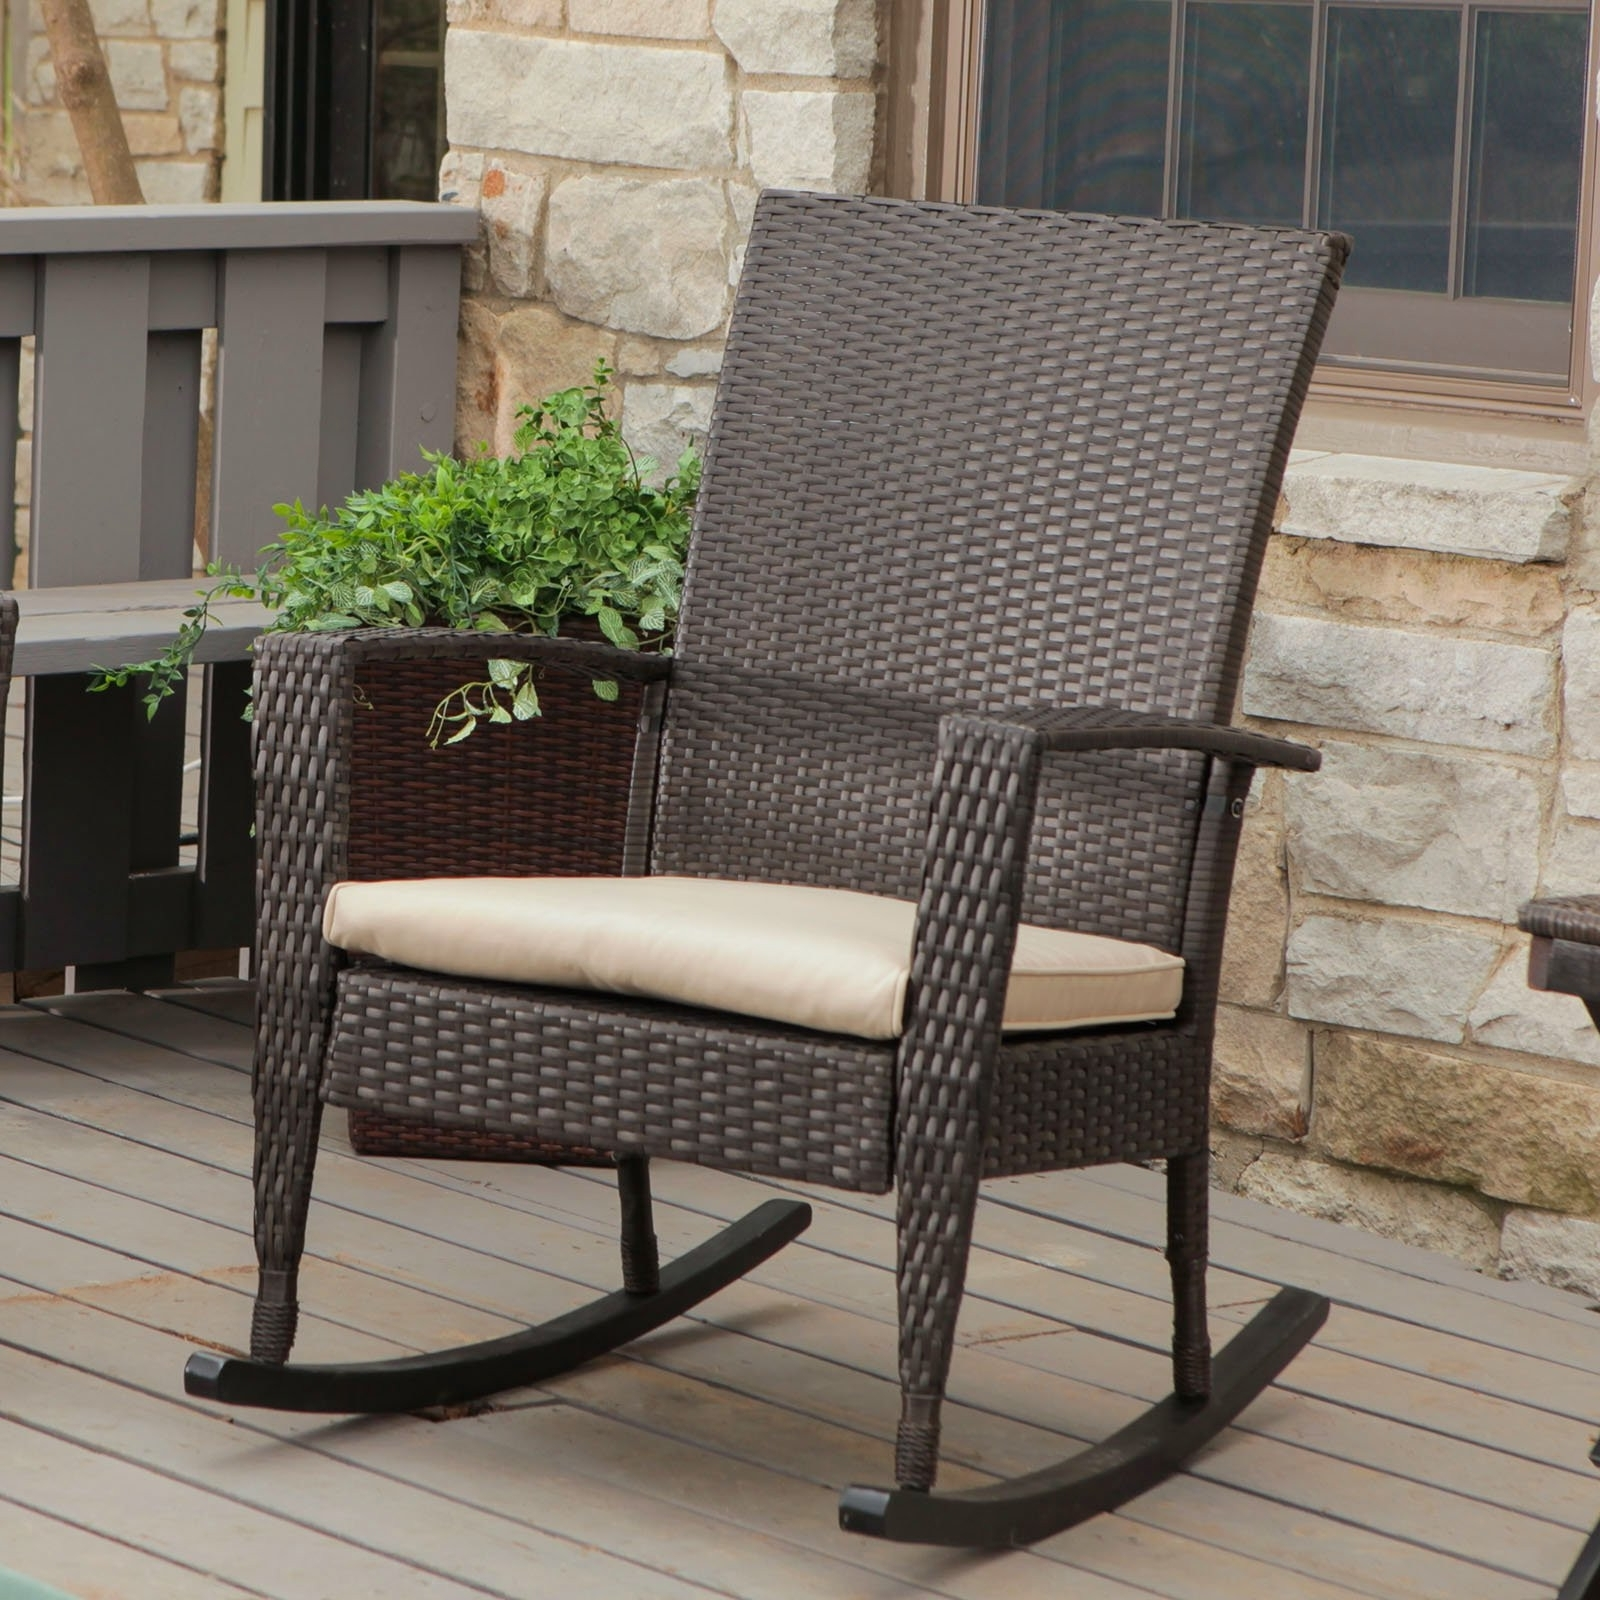 Rocking Patio Furniture Set Beautiful Garden Furniture Covers B And Pertaining To Well Known Outside Rocking Chair Sets (Gallery 14 of 20)